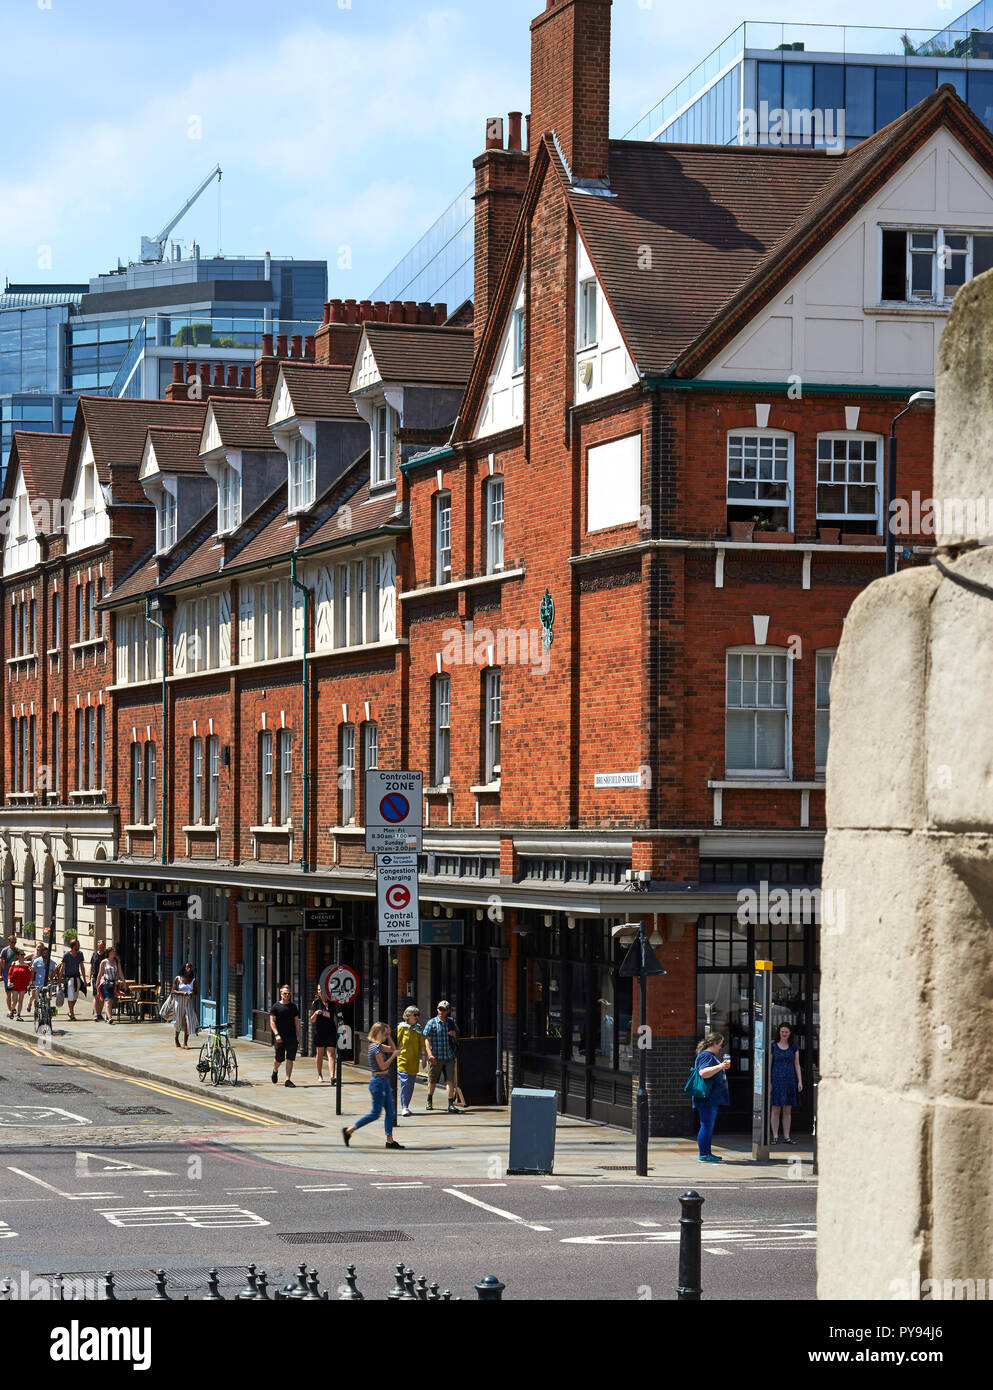 Old Spitalfields Market overall exterior view. Architectural Stock, London, United Kingdom. Architect: NA , 2017. - Stock Image